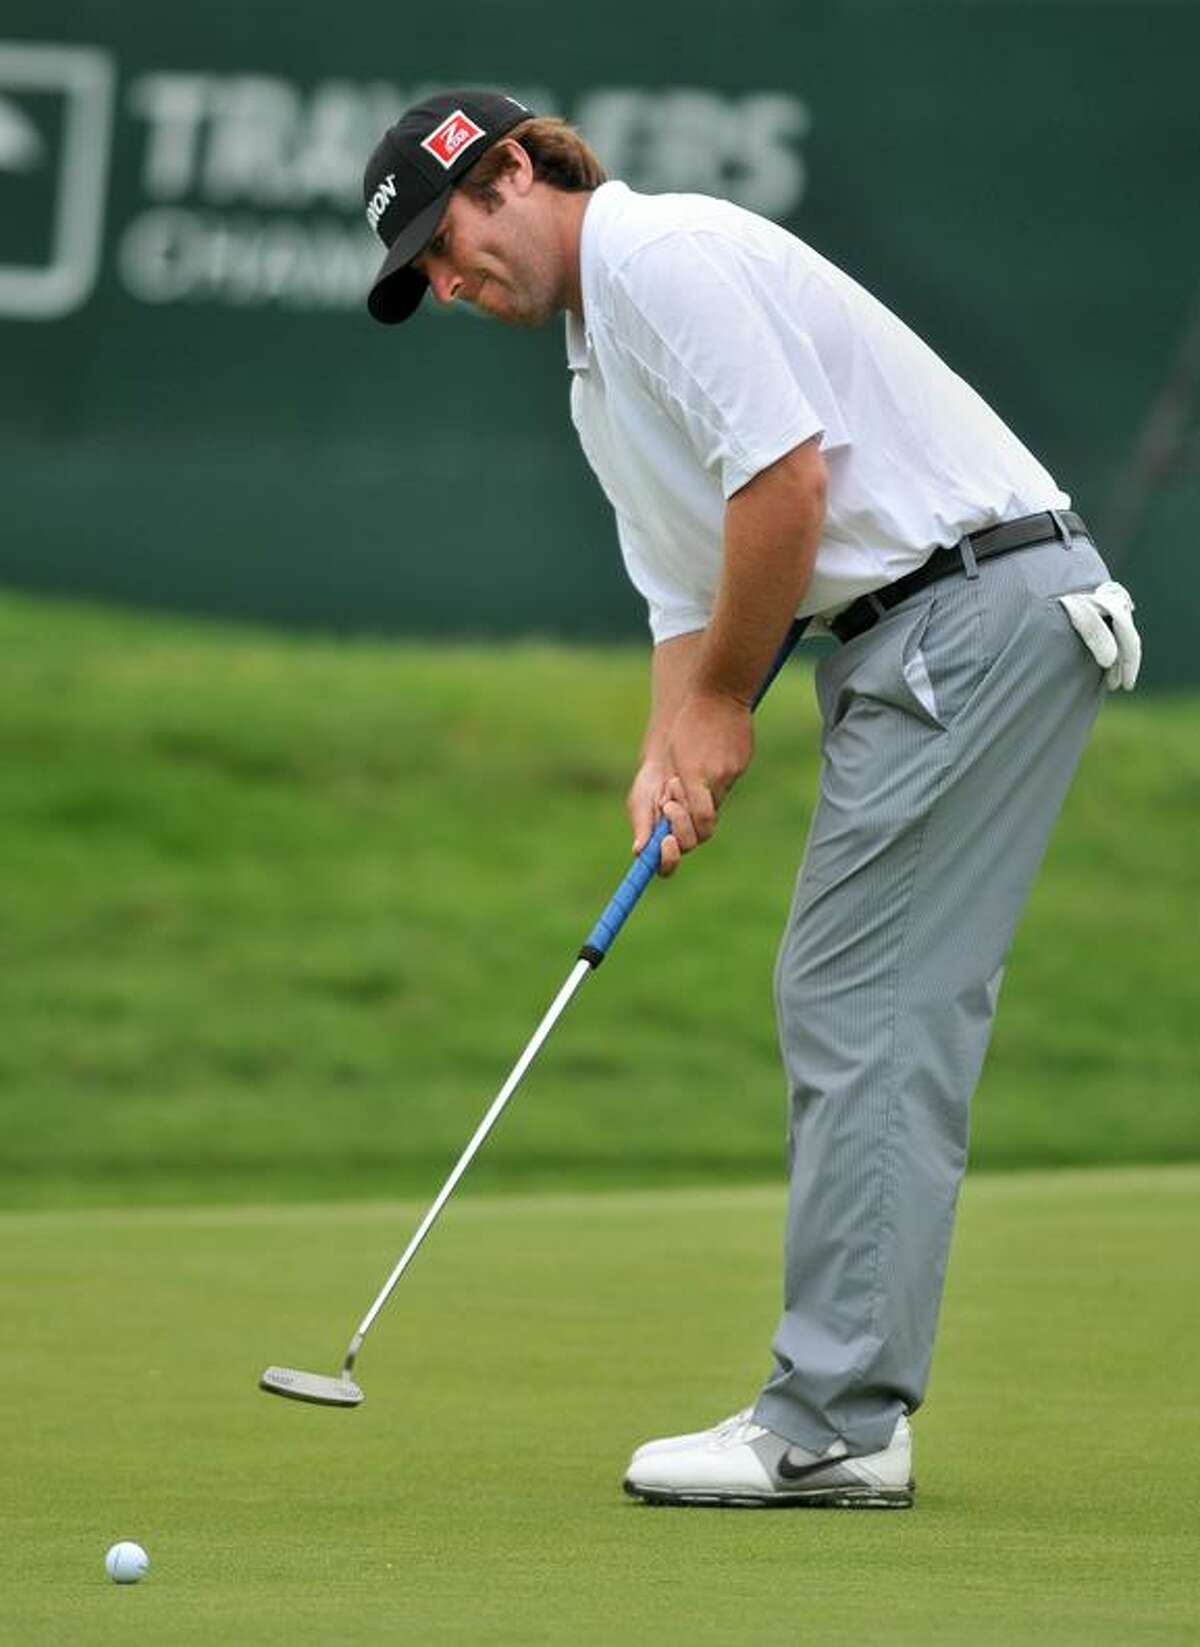 Jim Renner putts for birdie on the ninth green Friday afternoon at the Travelers Championship at TPC River Highlands in Cromwell. (Brad Horrigan/Register)